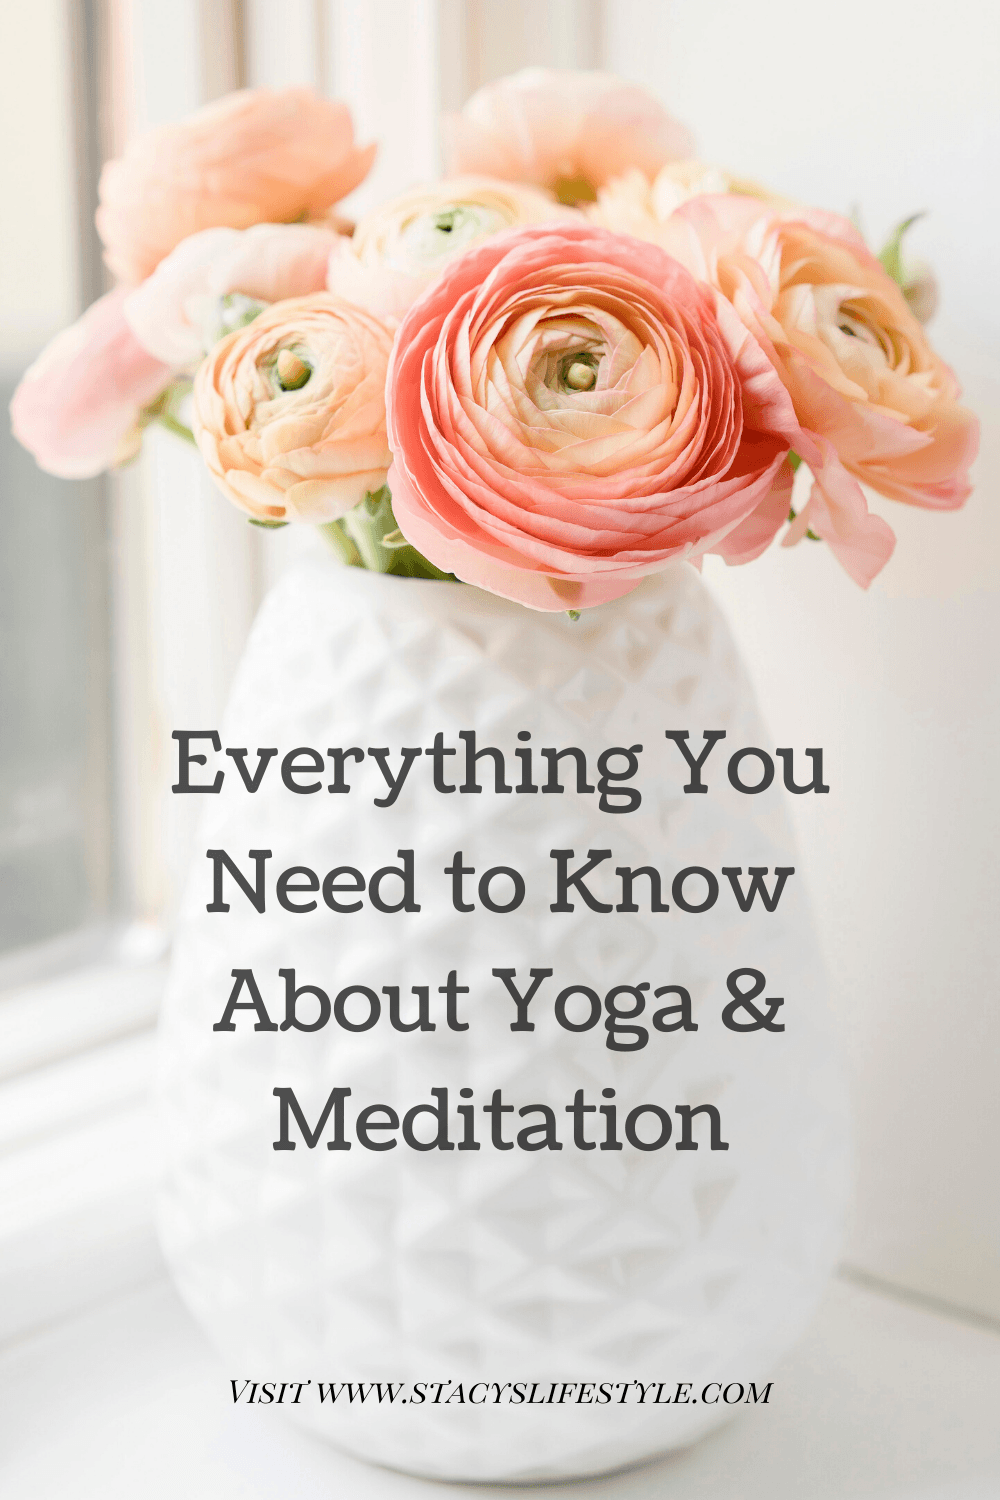 Everything You Need to Know About Yoga & Meditation